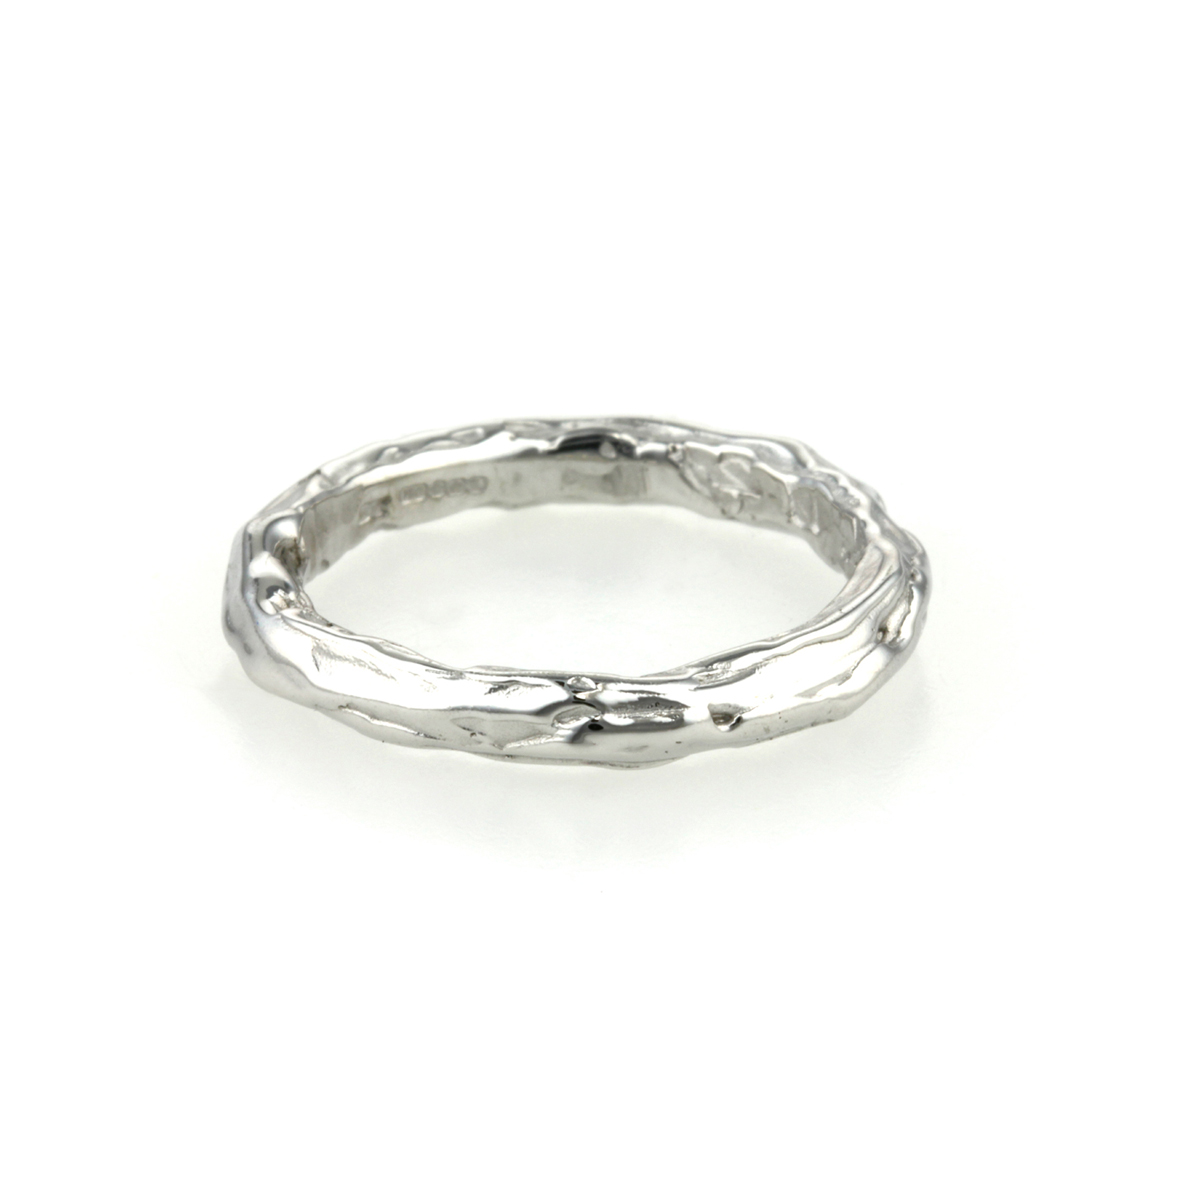 18ct white gold wedding ring copy